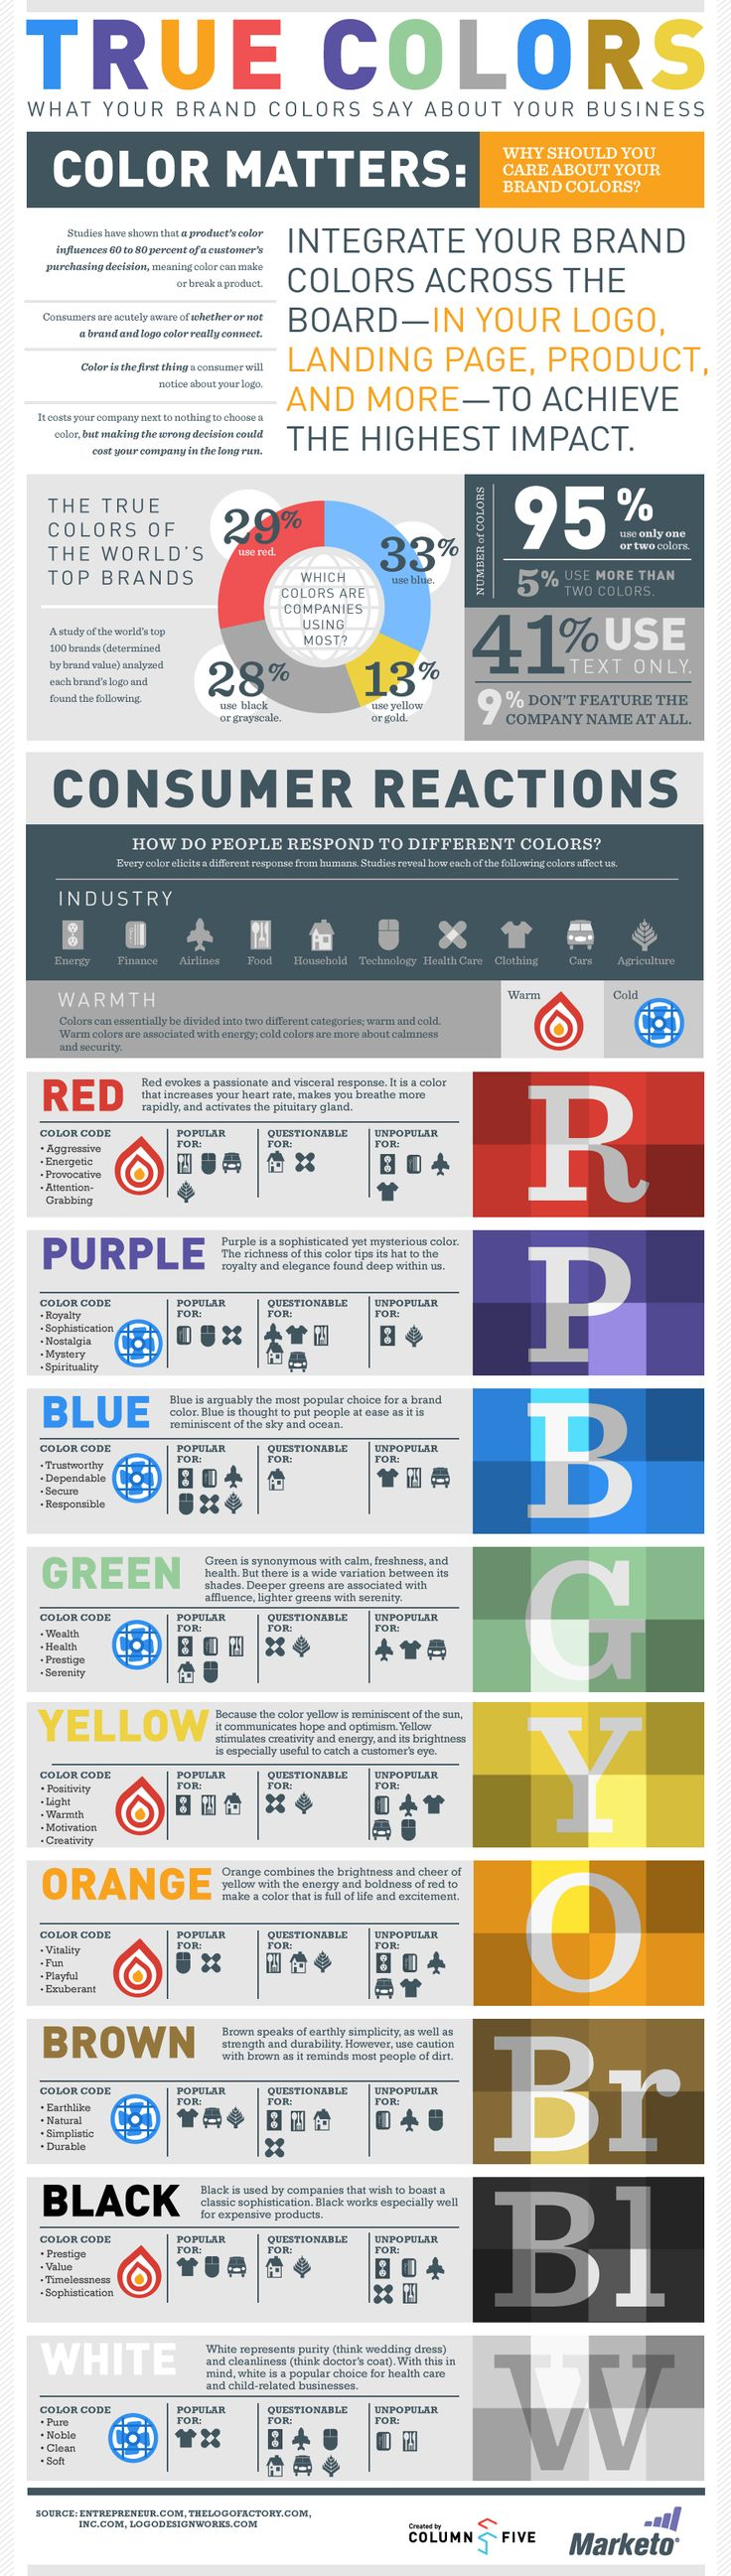 Corporate Design. True colors, color matters.    Blue, red, purple, green, orange, yellow, brown, black/greyscale, white?   What your brand colors says about your business.